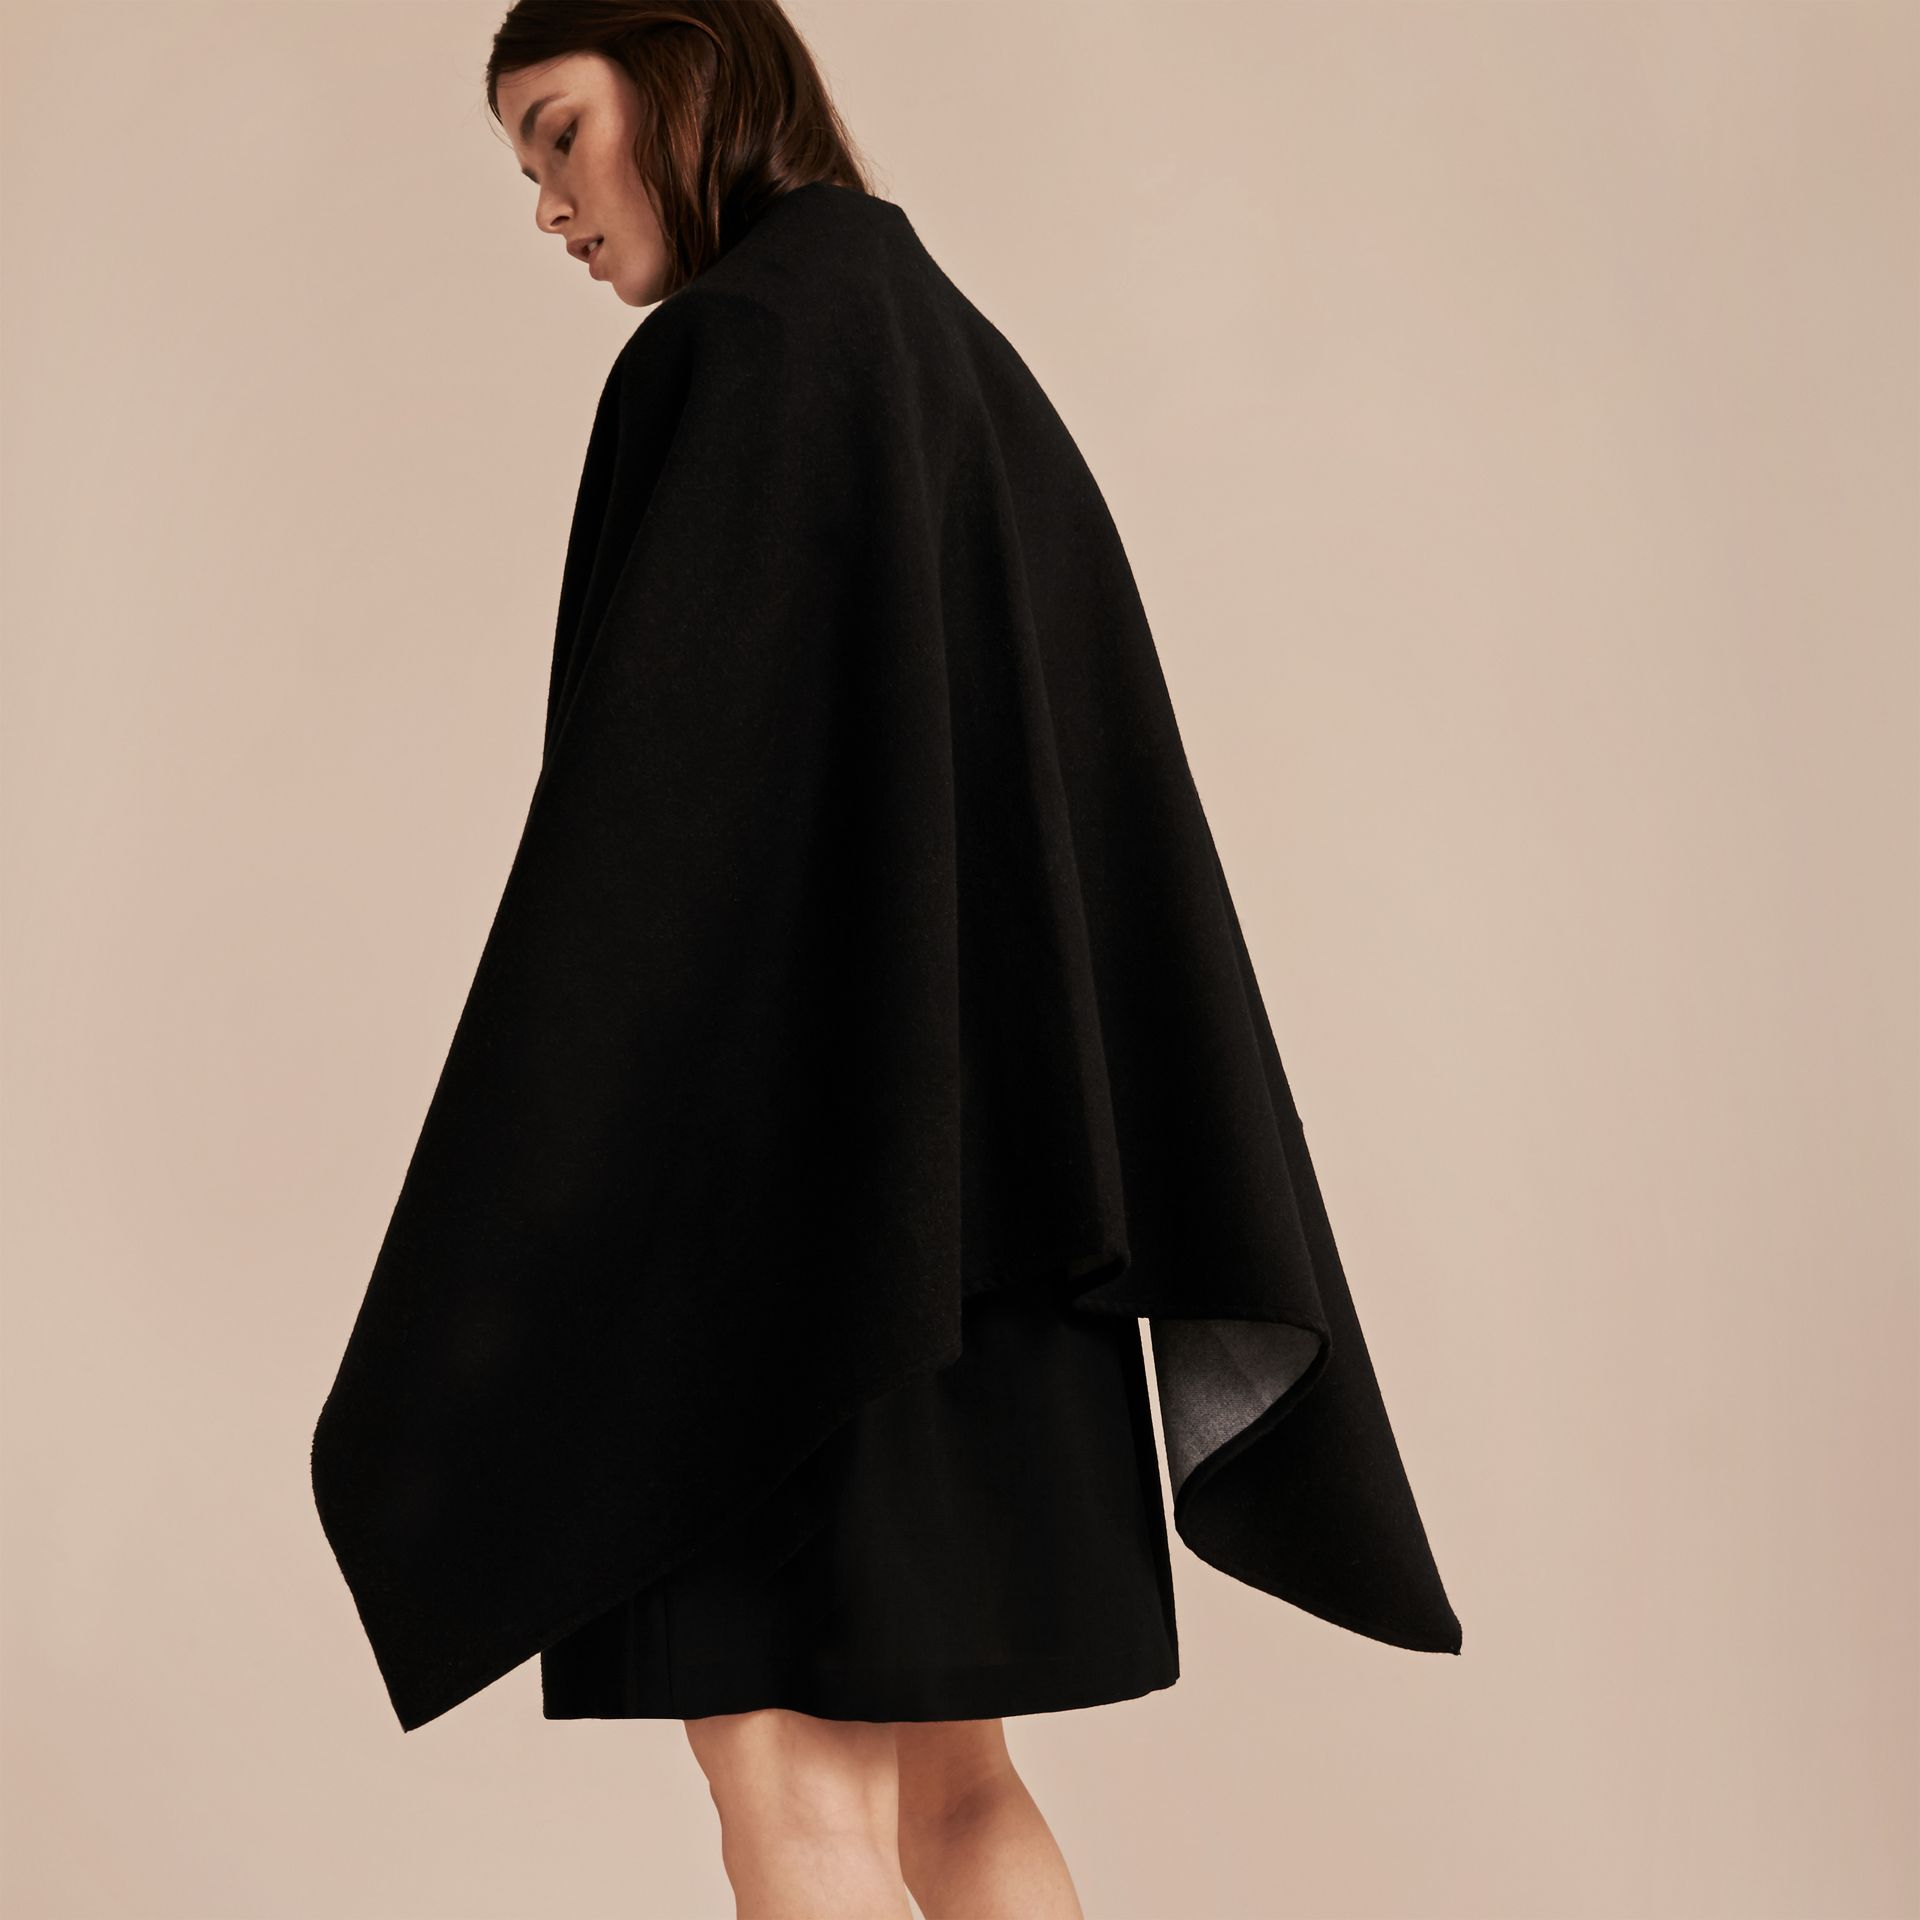 Check-Lined Wool Poncho in Charcoal - Women | Burberry - gallery image 5